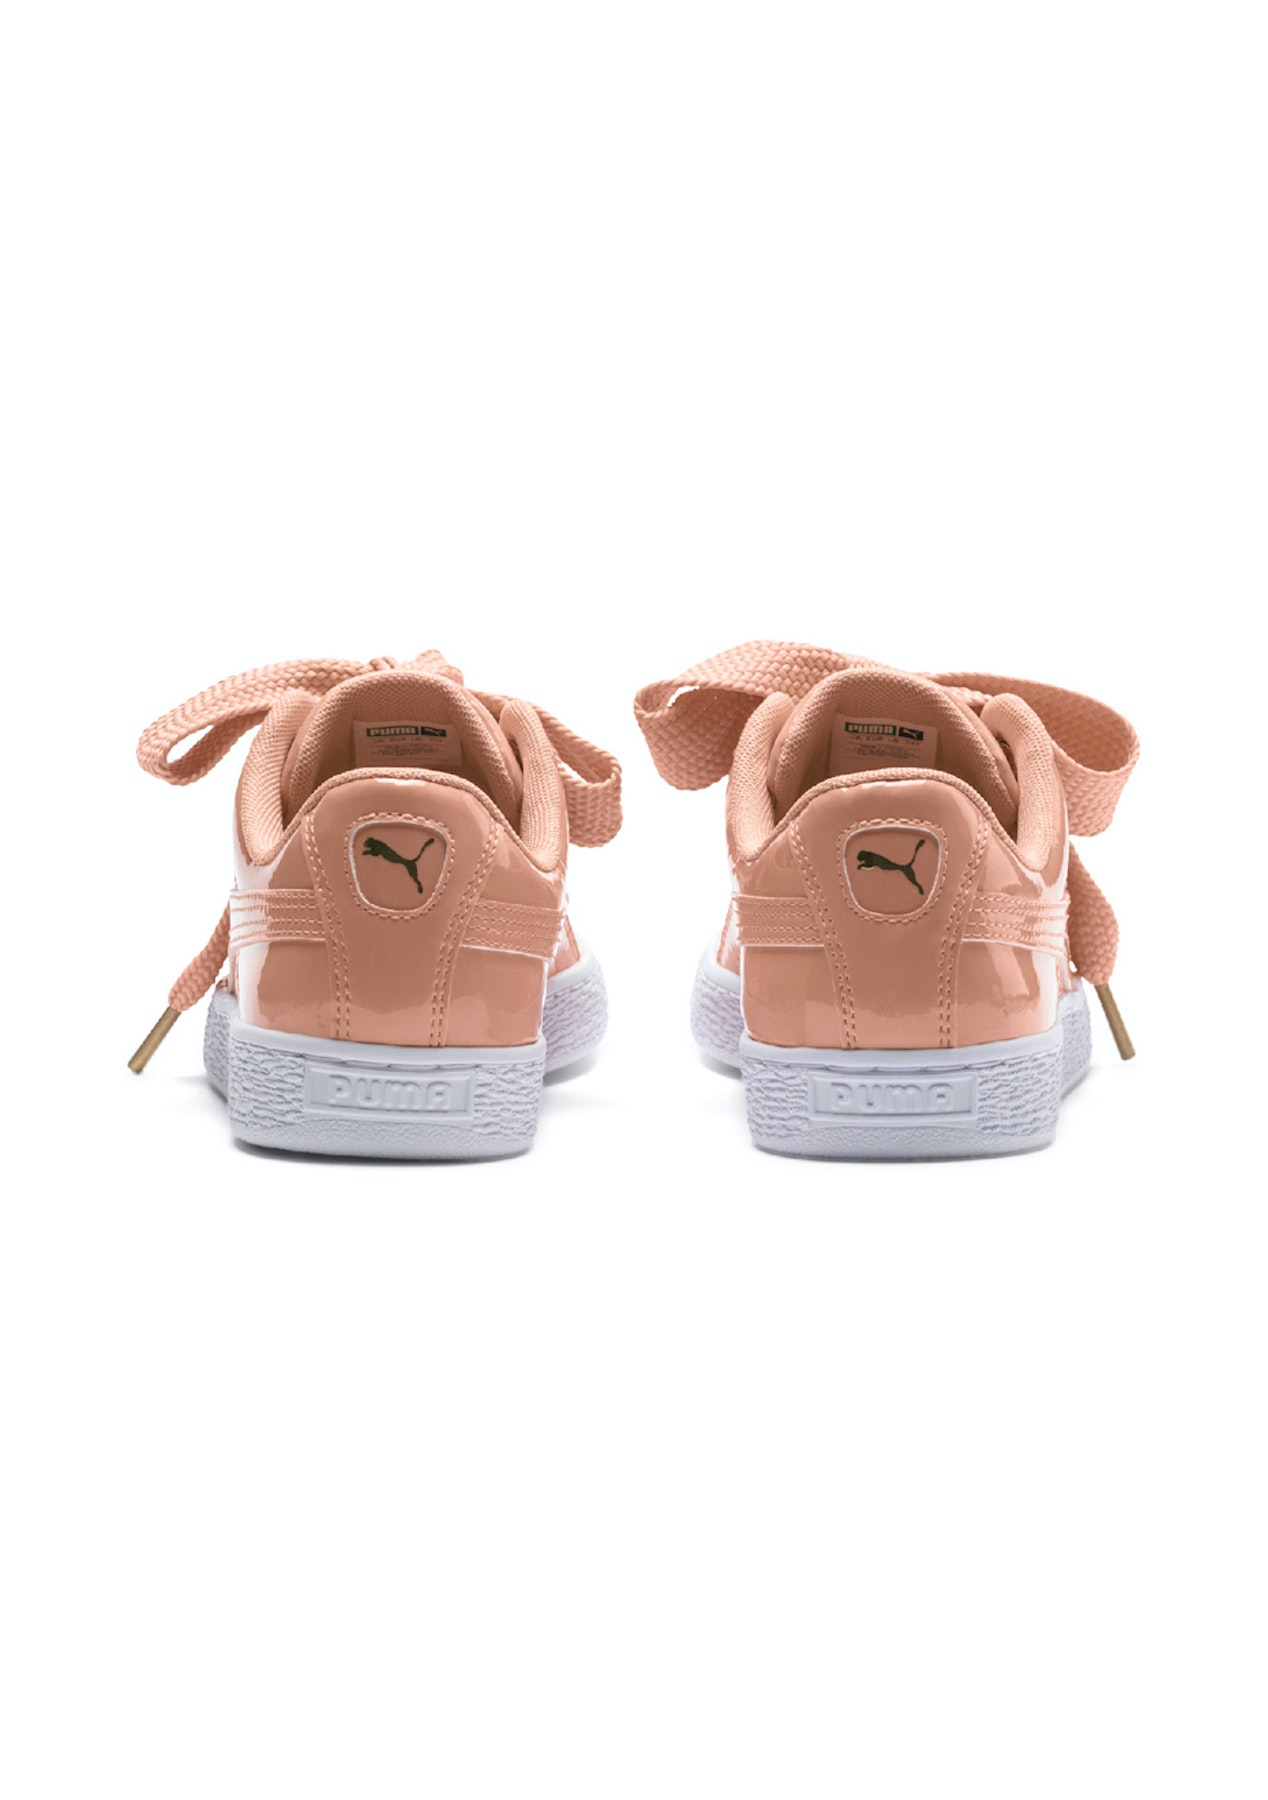 hot sale online 6eb37 6f0be Puma - Womens Basket Heart Patent - Dusty Coral